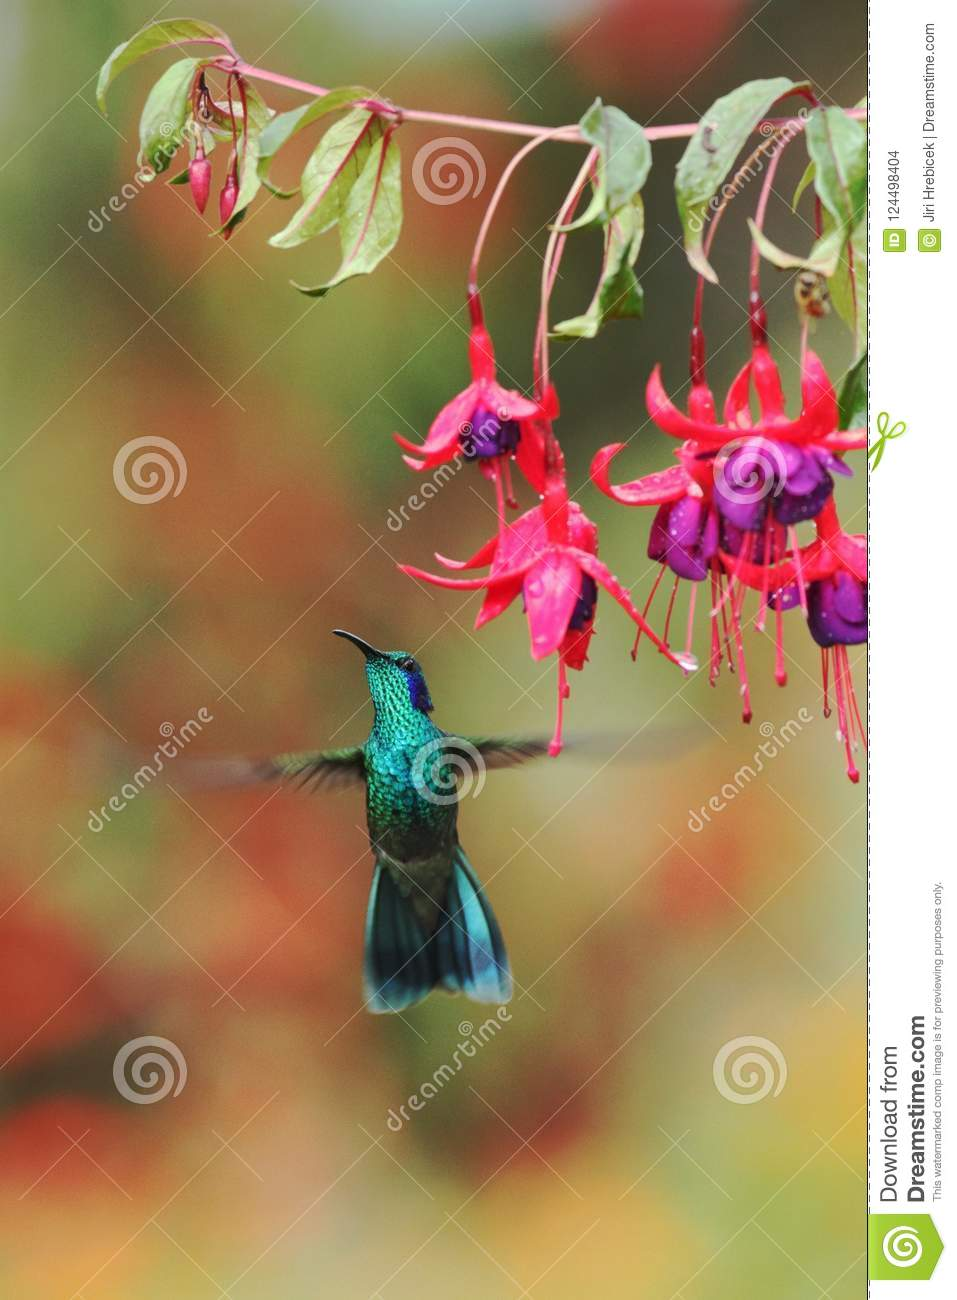 Green violetear, Colibri thalassinus, hovering next to red flower in garden, bird from mountain tropical forest, Costa Ri